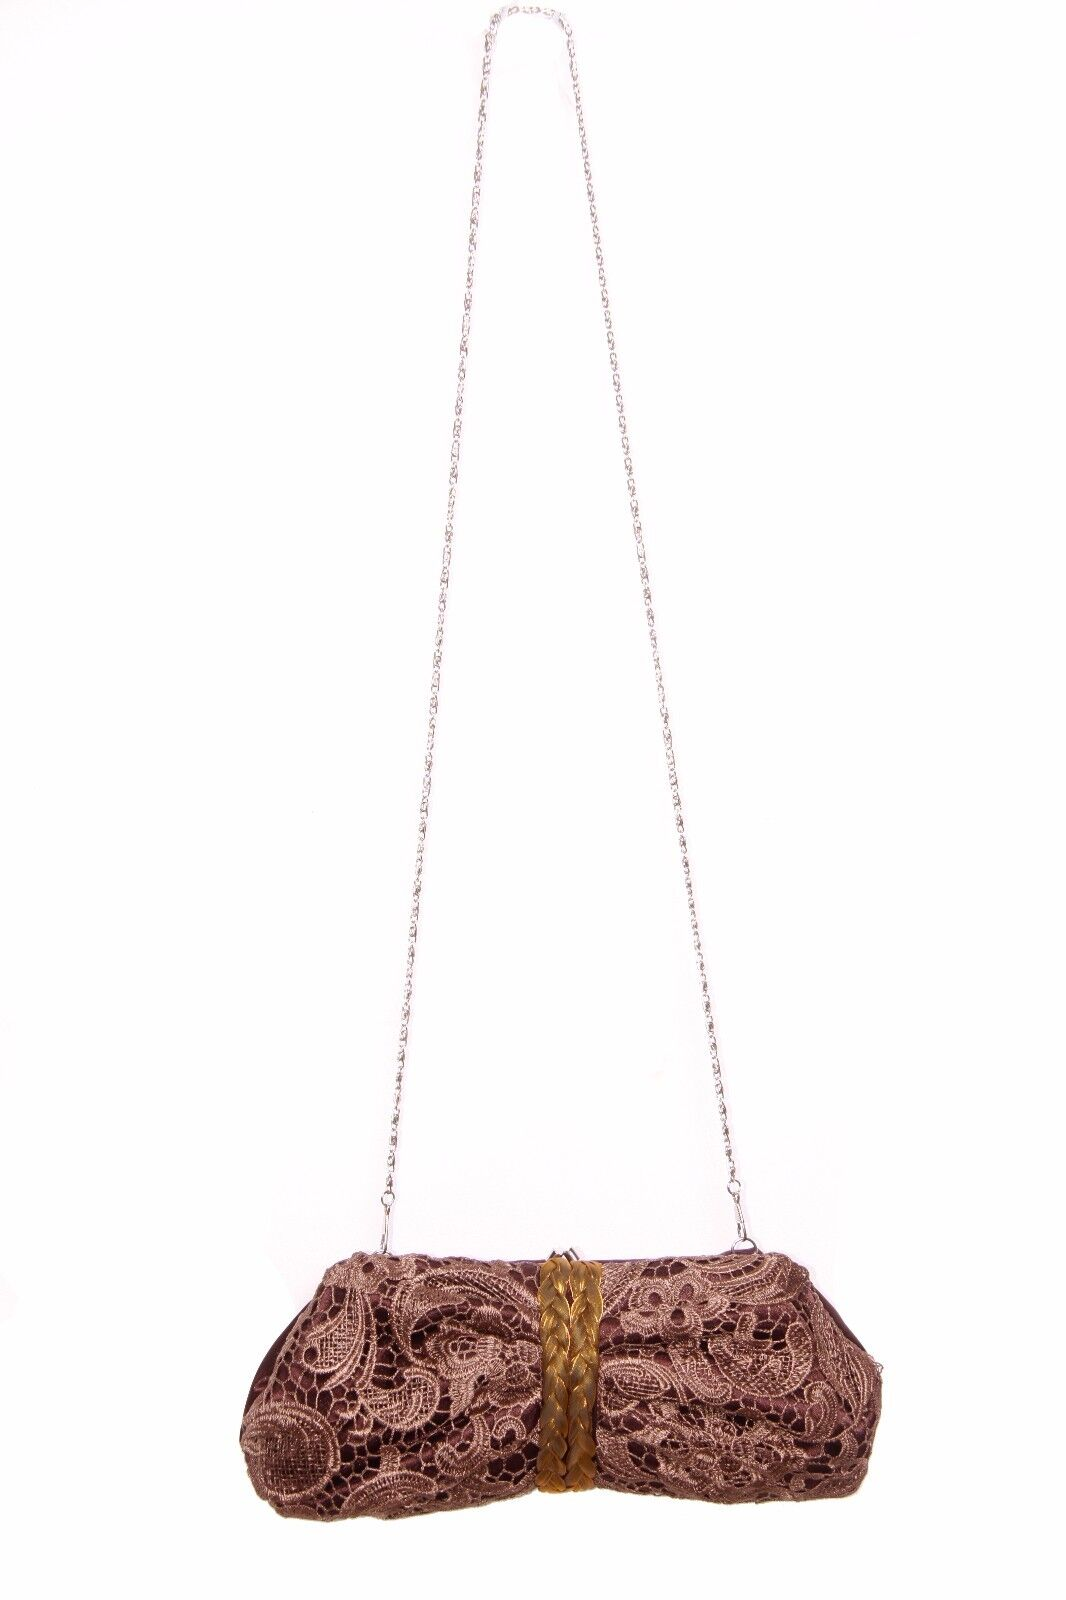 66b14551290 Vintage Style Brown Clutch Bag W Metallic Shoulder Chain Lace and Braids  (S259)